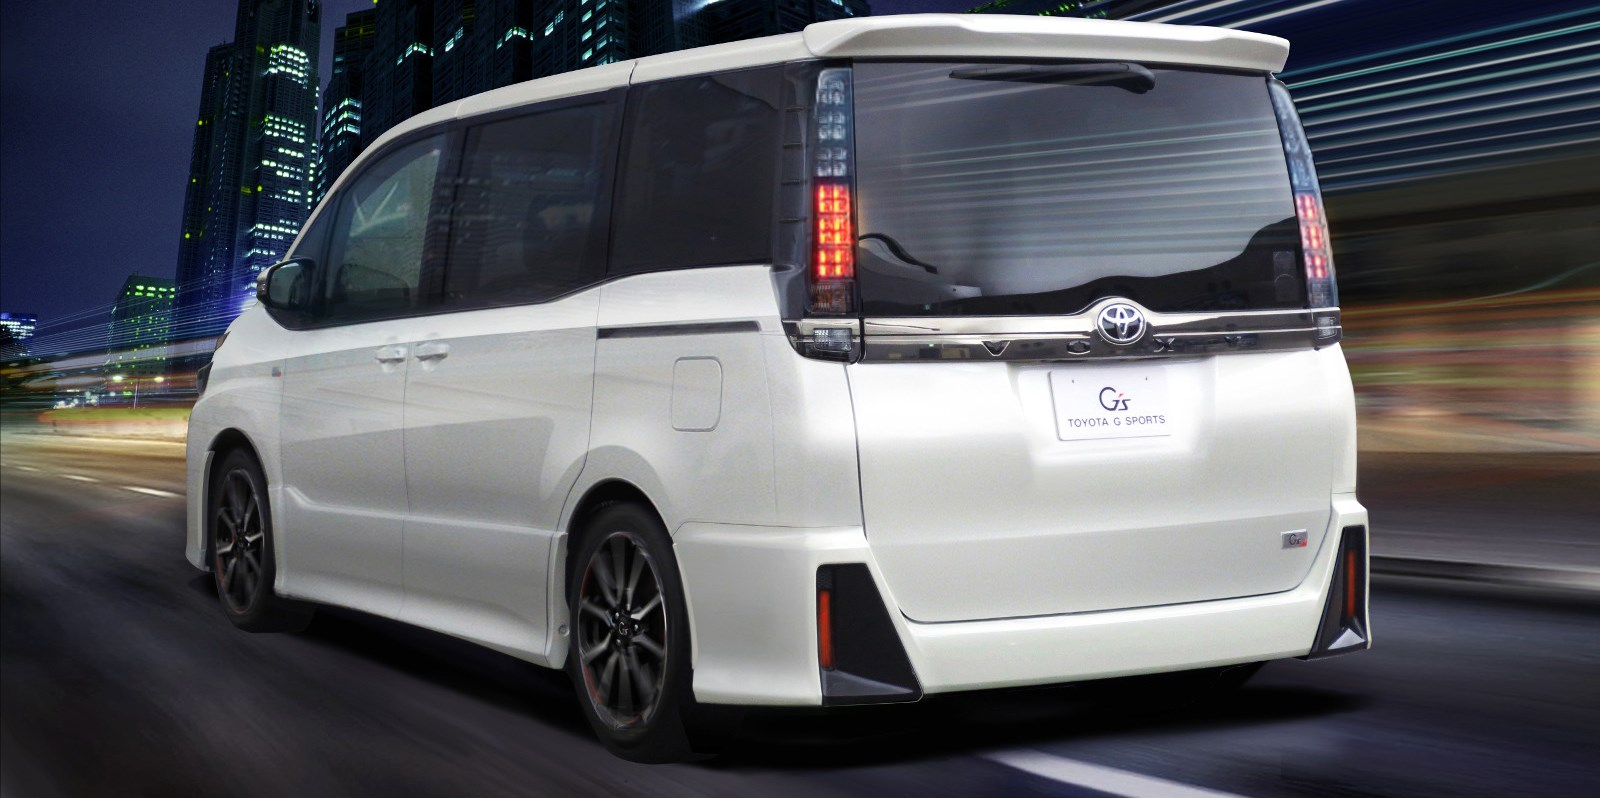 Toyota Noah Gs and Voxy Gs concepts  Vehiclejar Blog